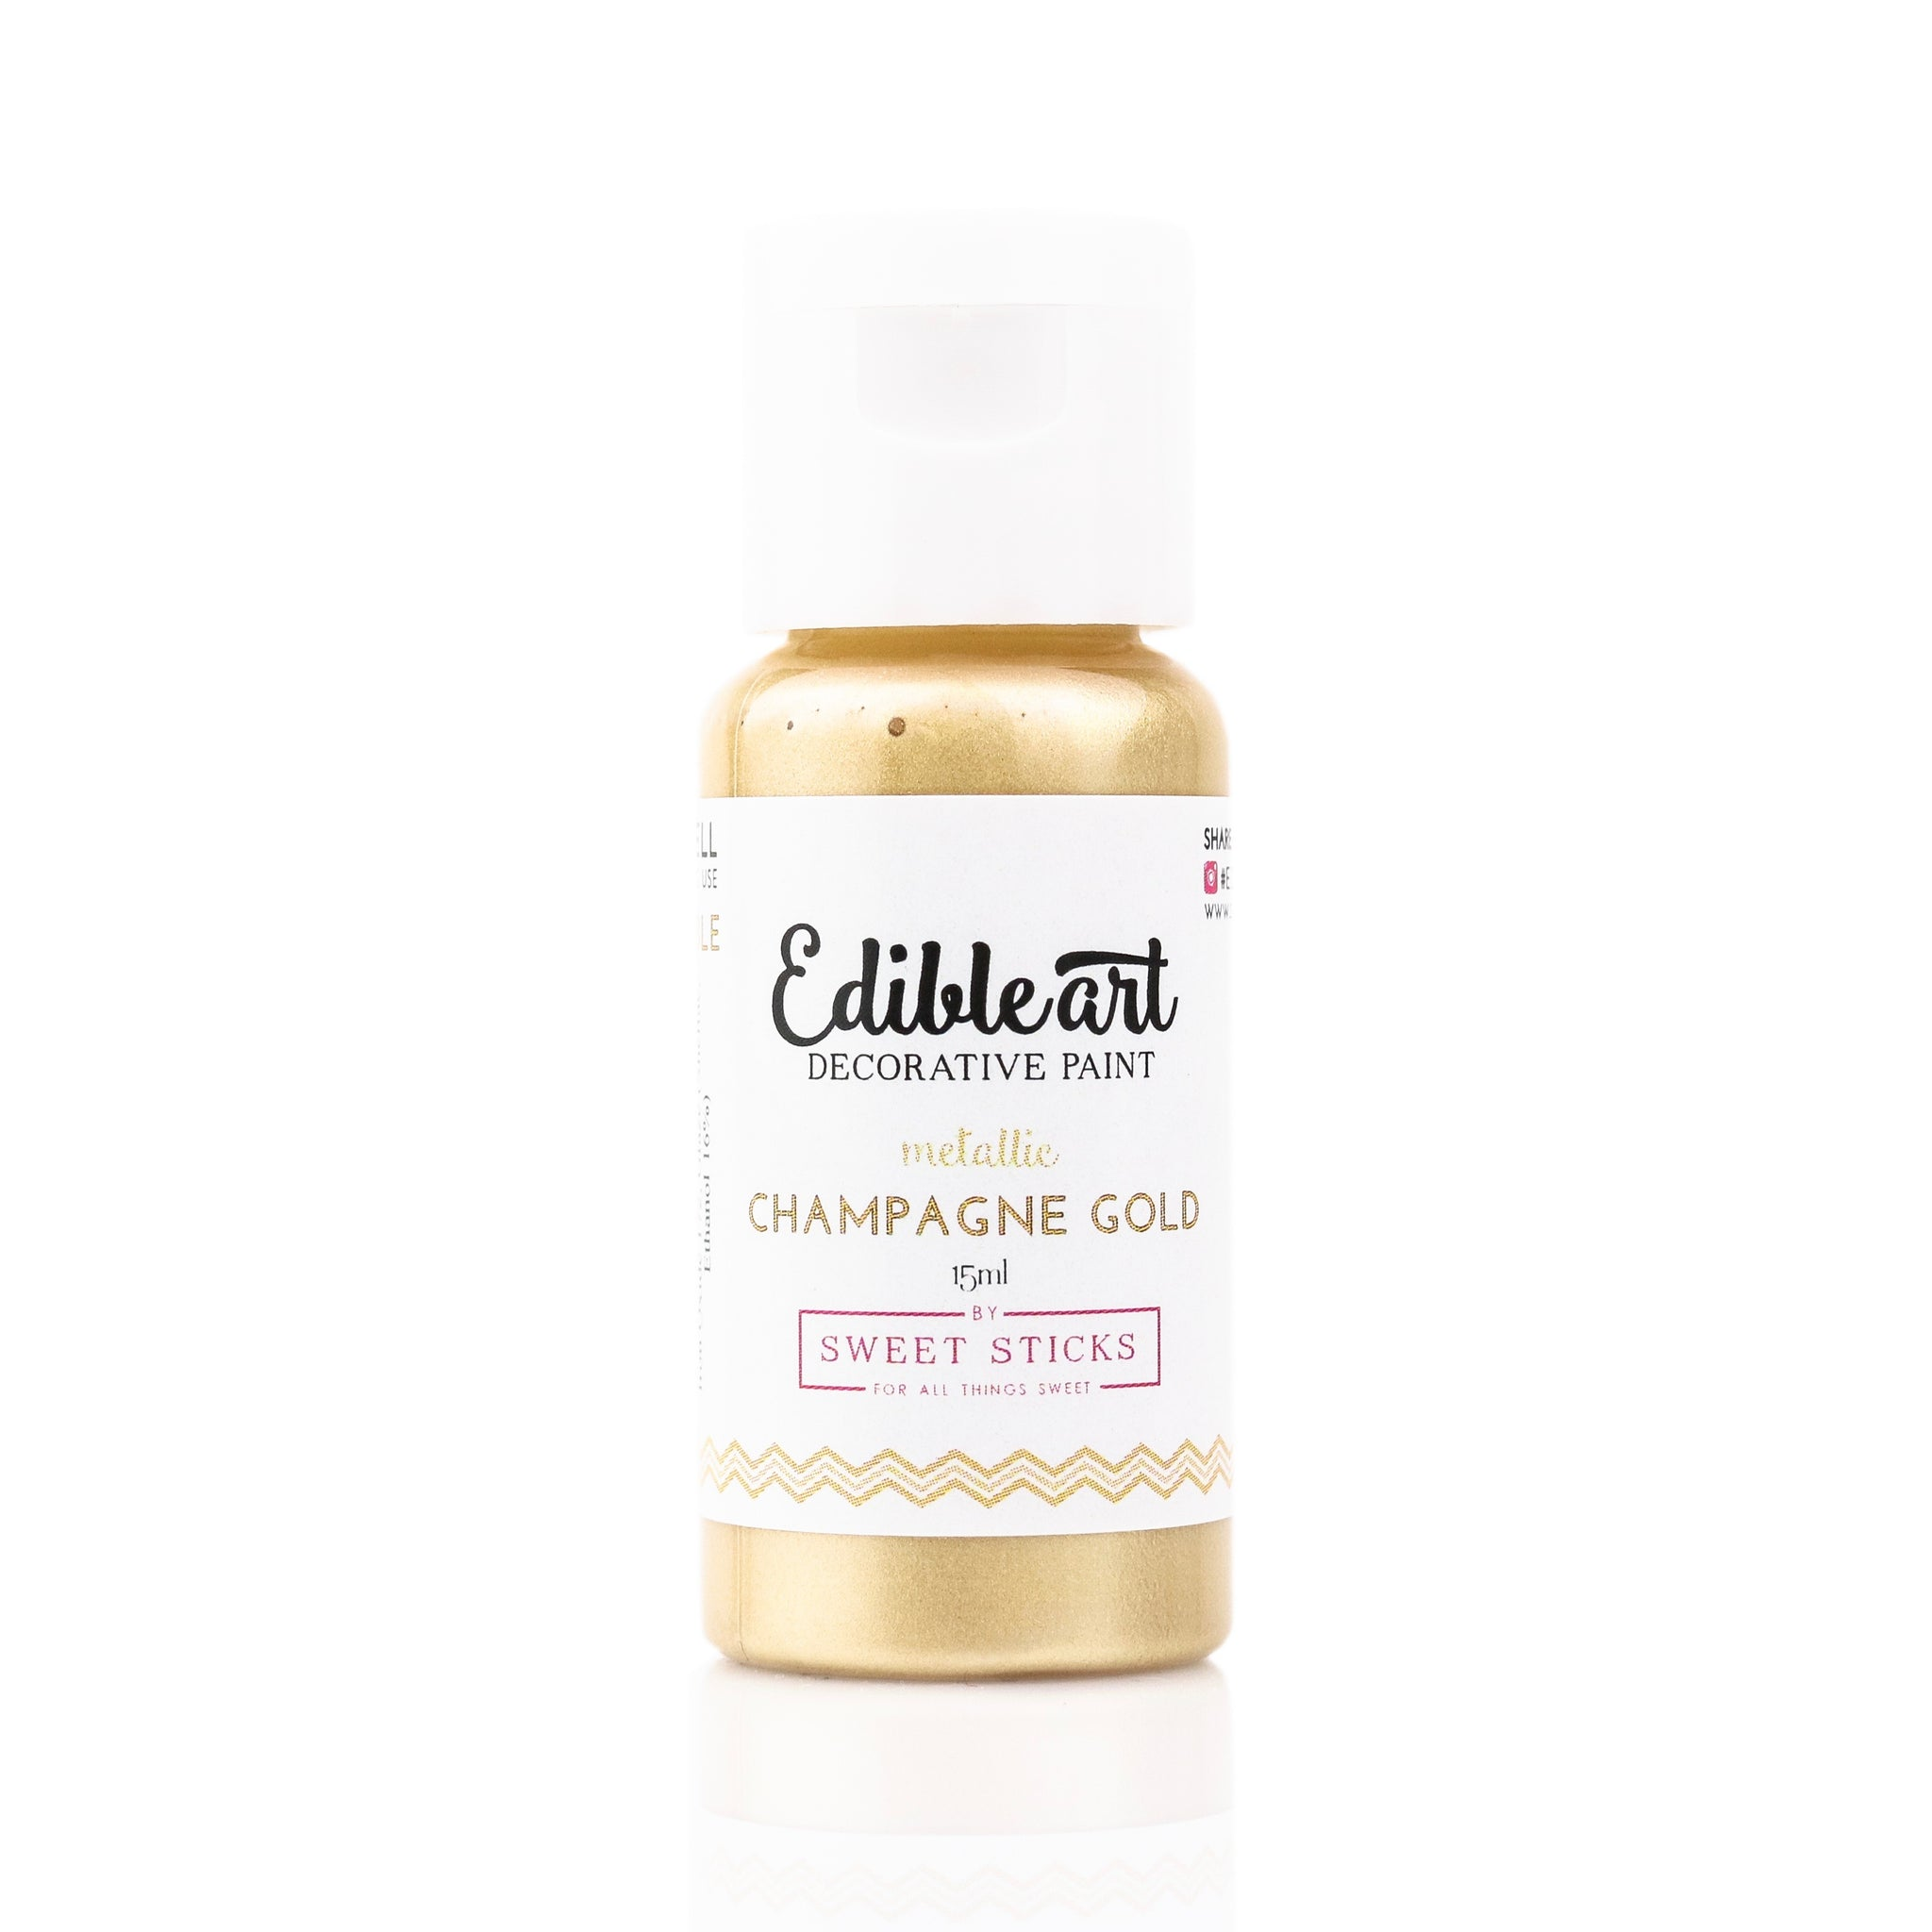 Edible Art Paint - Metallic Champagne Gold 15ml - Dragonfly Cake Supply, Alberta, Canada